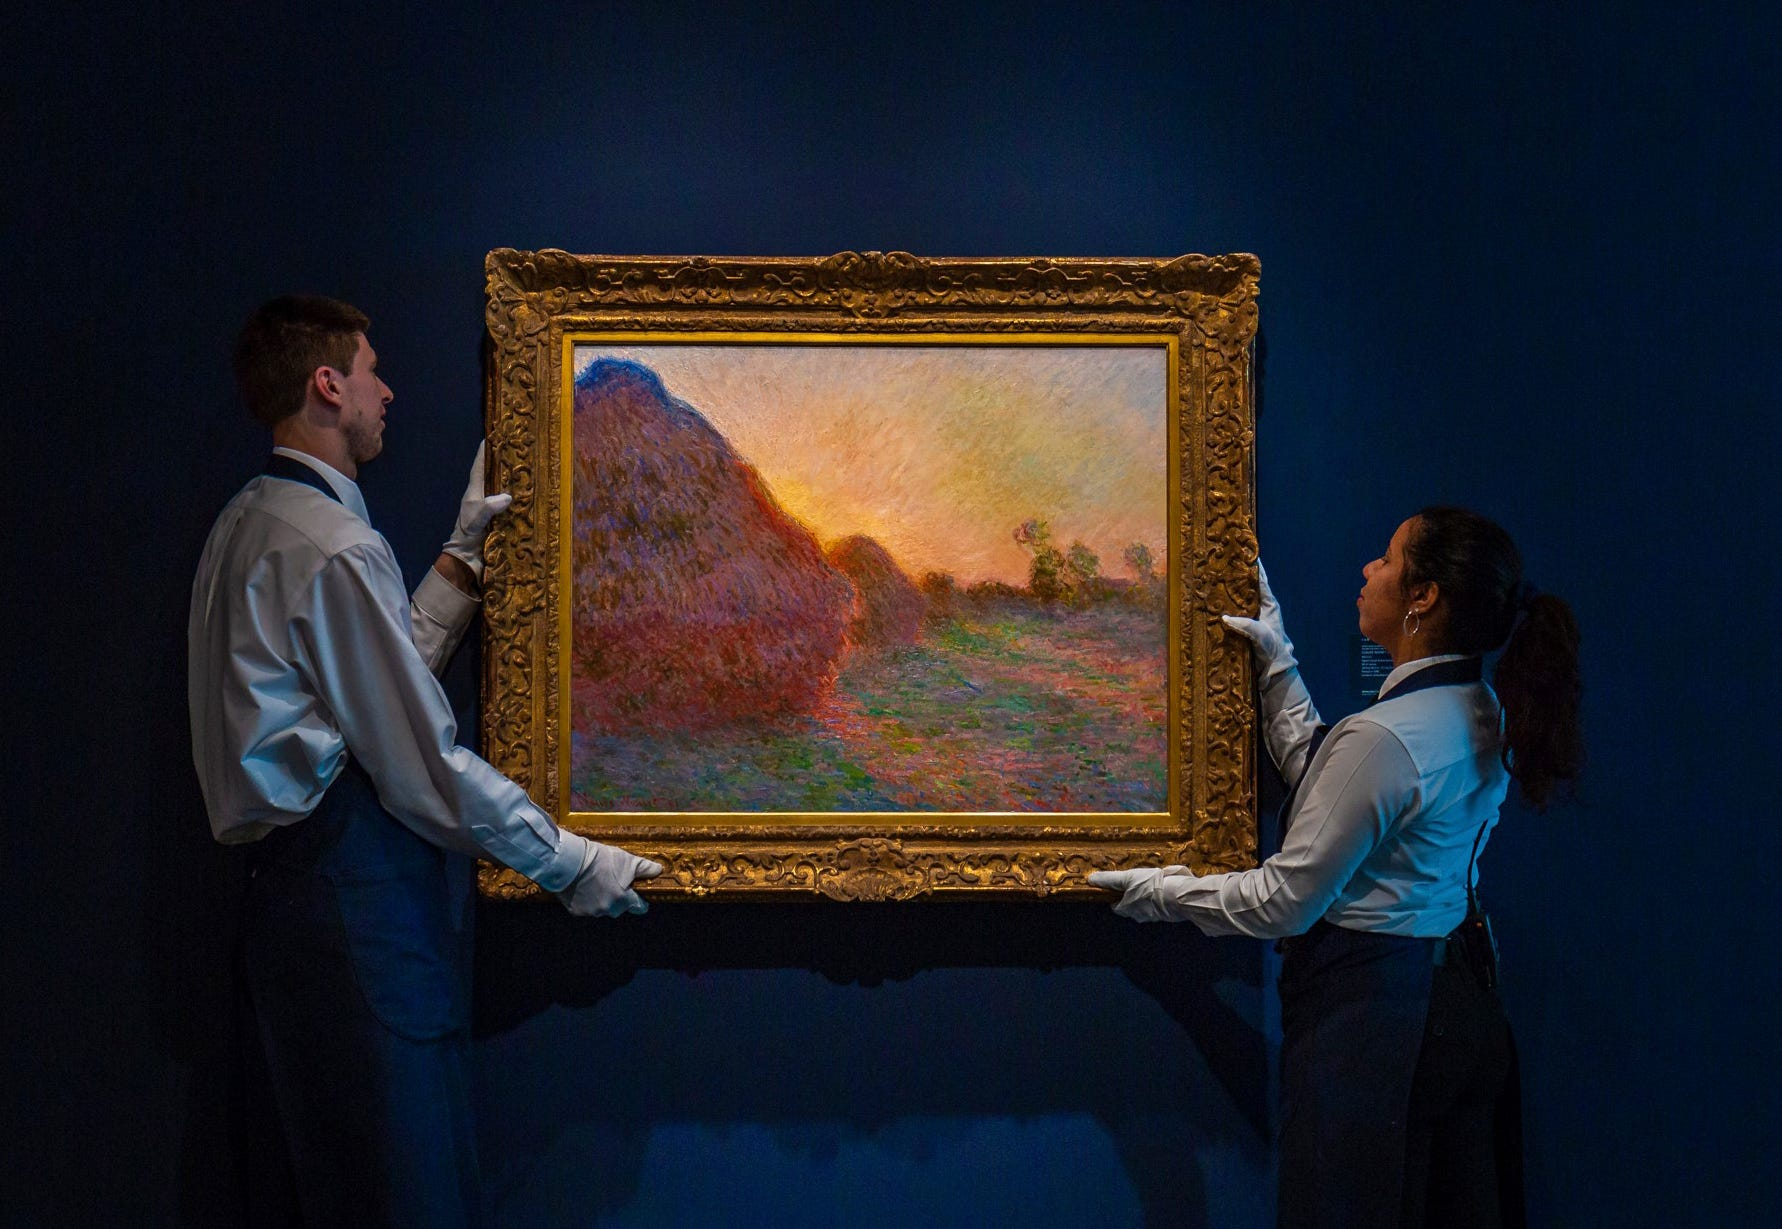 Claude Monet haystack painting fetches record $110.7M at NY auction